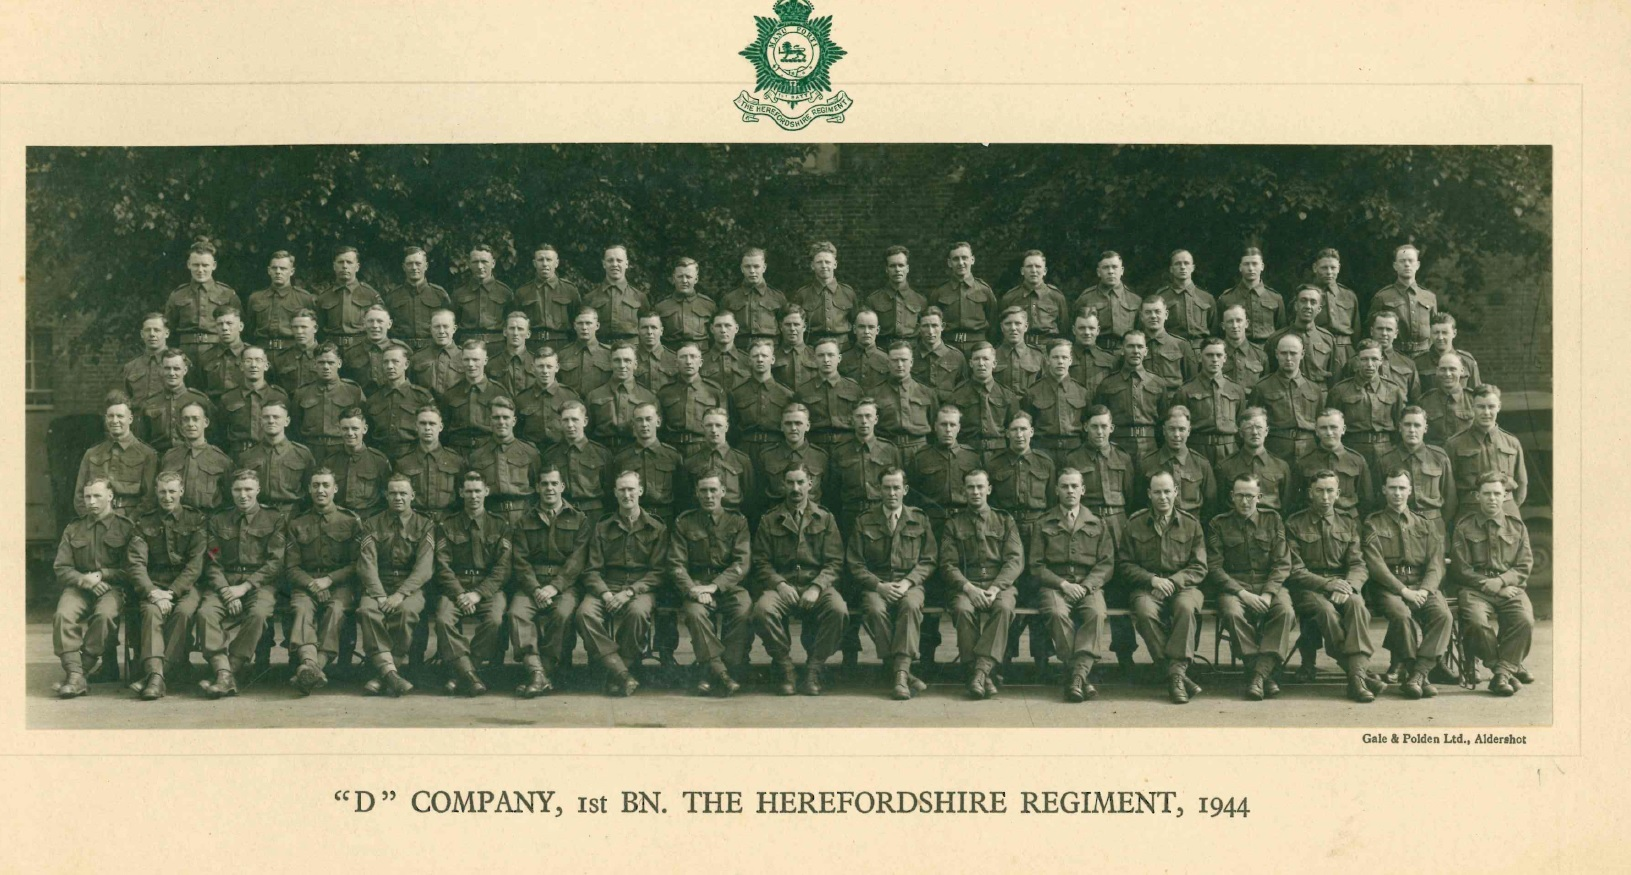 Hereford Regiment's photograph of D Regiment